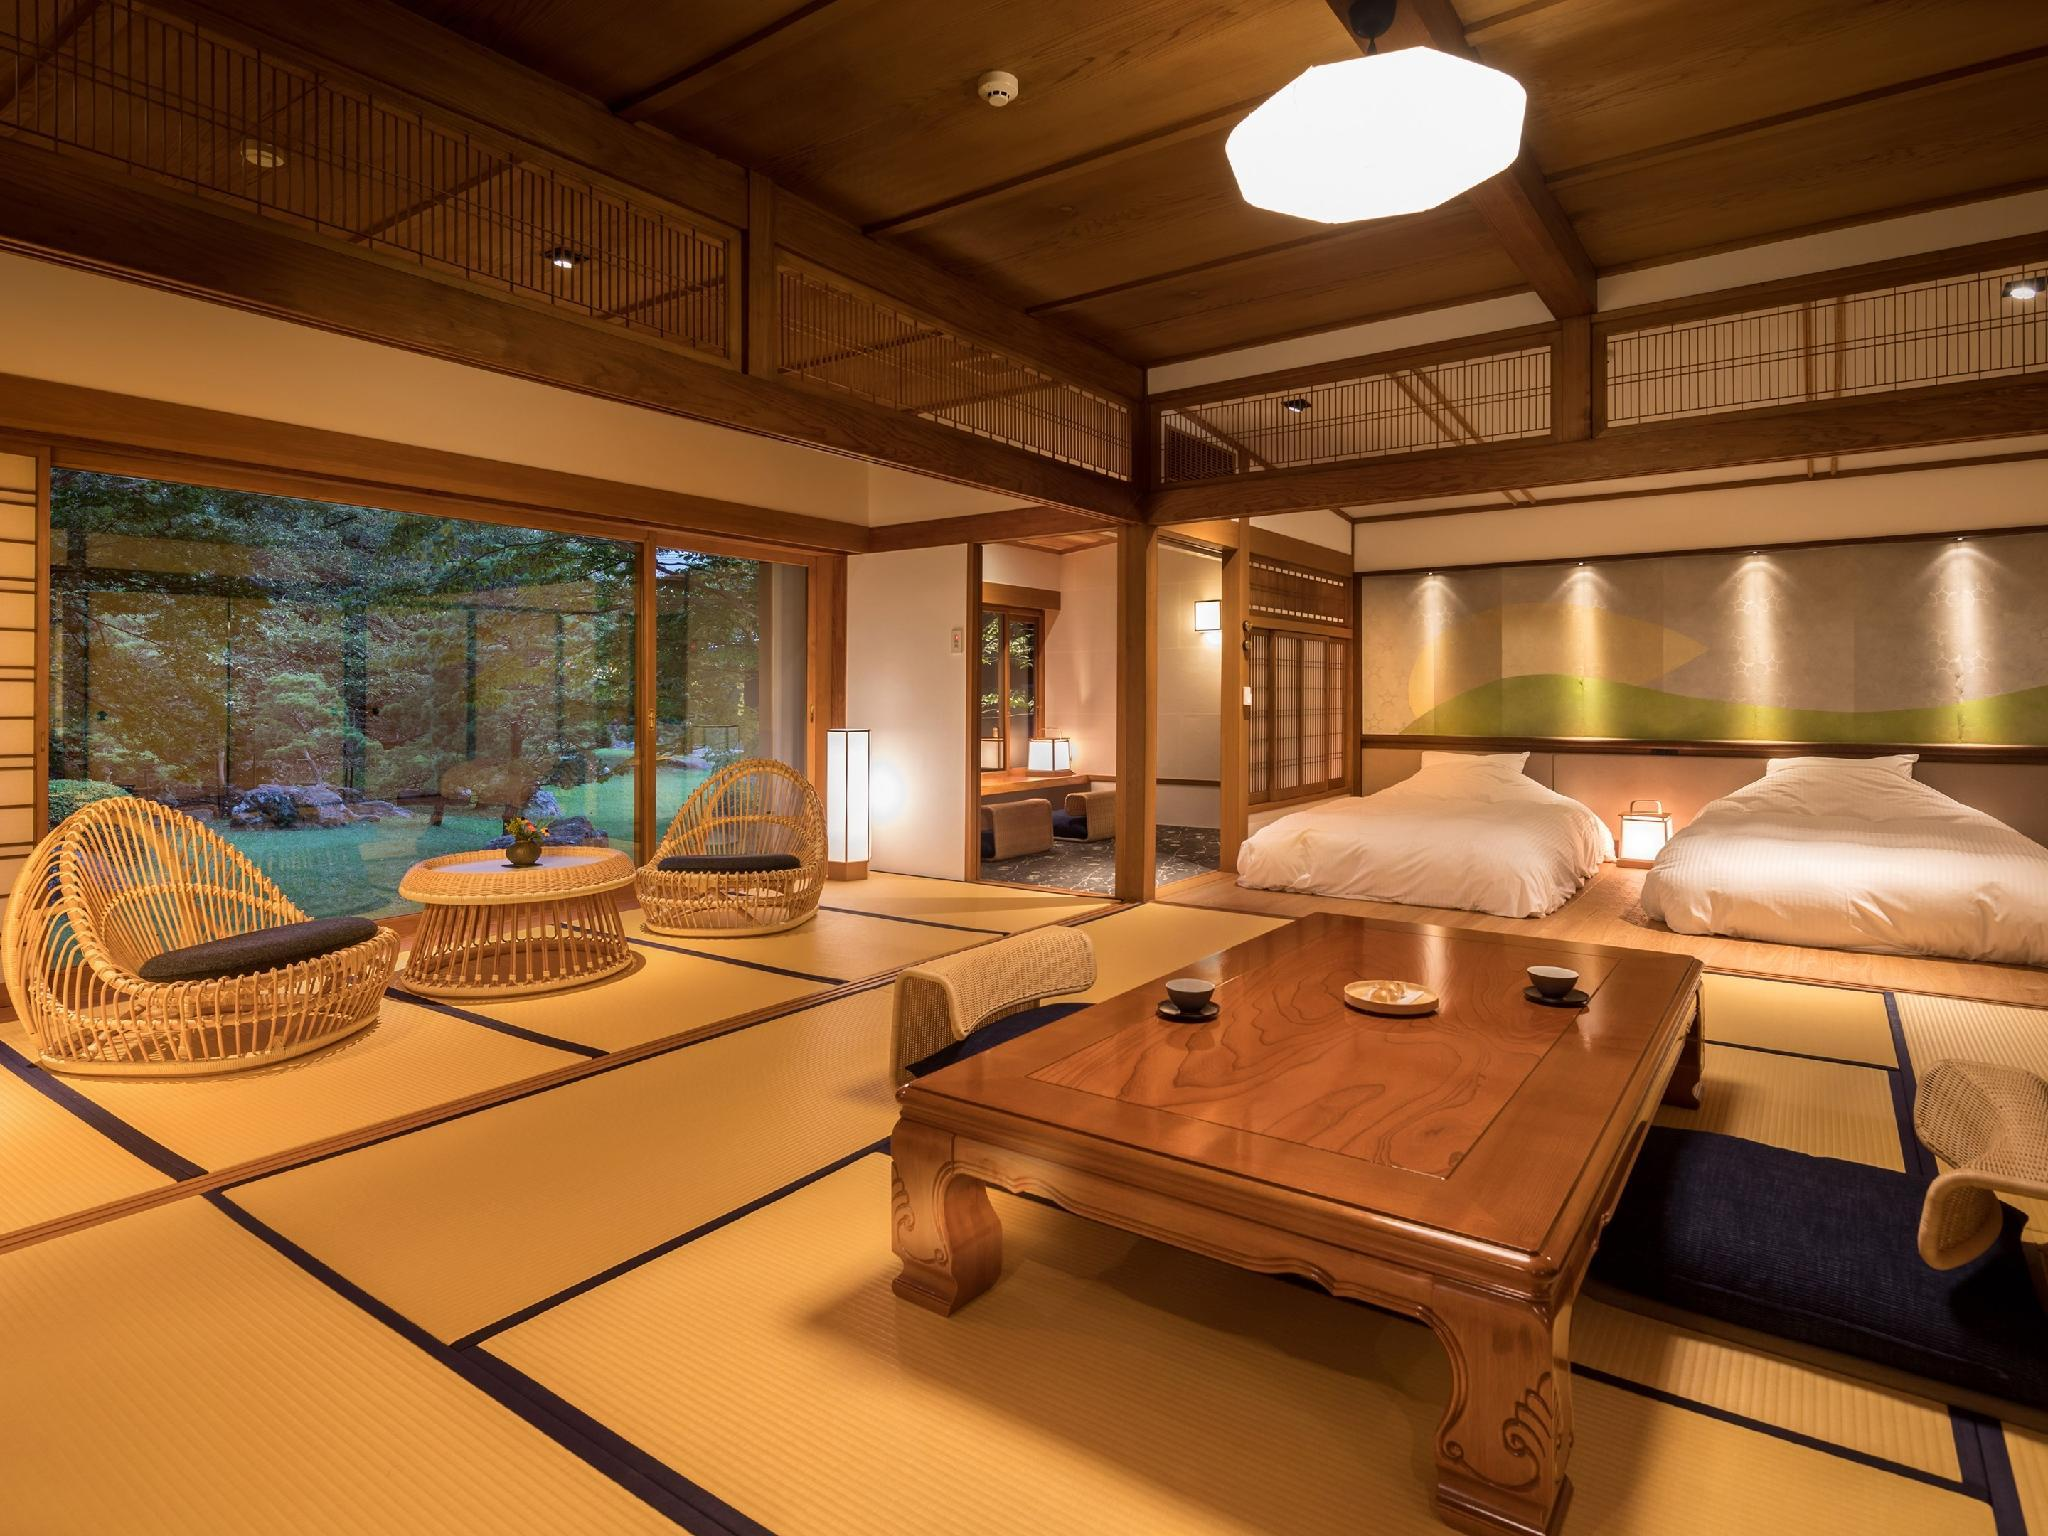 独立房(和洋式房/2张床) (Detached Japanese/Western-style Room (2 Beds))